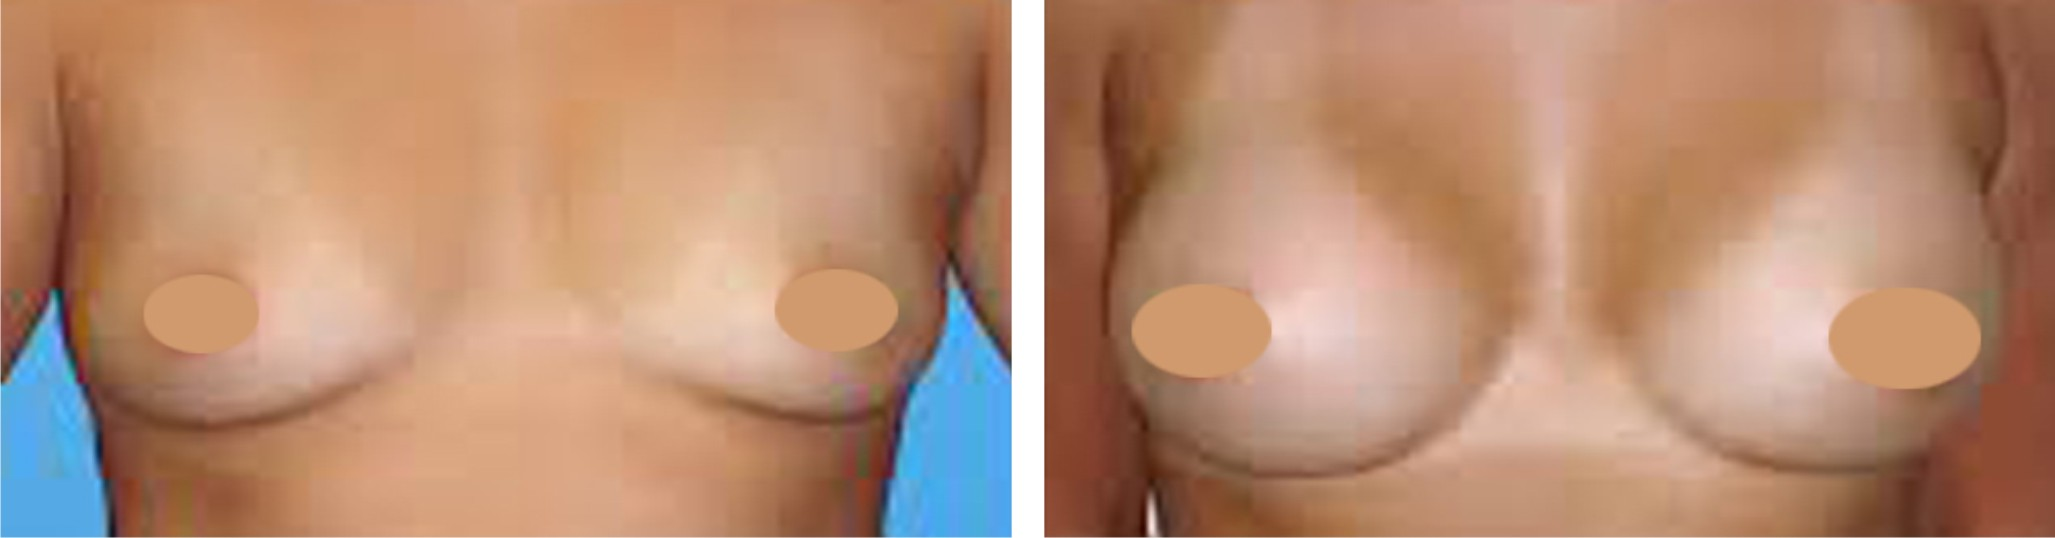 Breast Augmentation Image Two